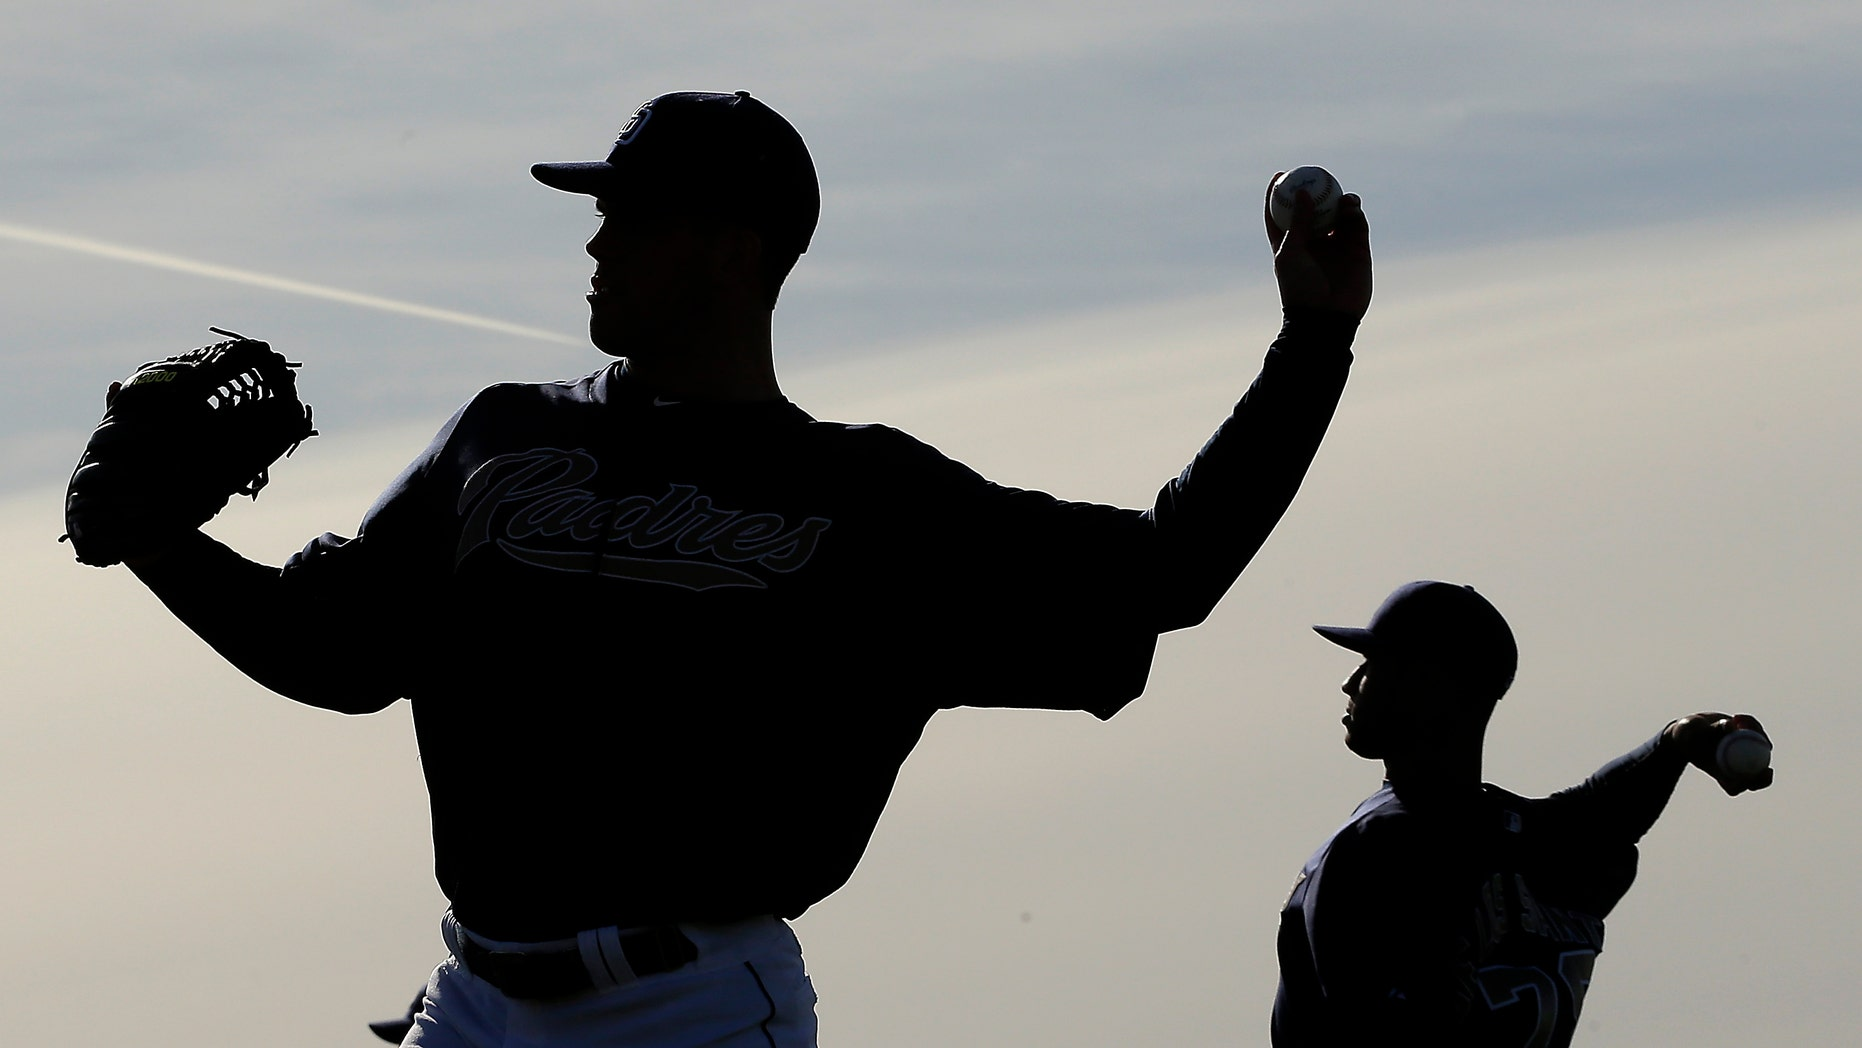 San Diego Padres pitchers Clayton Richard, left, and Fautino De Los Santos throw during a spring training baseball workout on Friday, Feb. 15, 2013, in Peoria, Ariz. (AP Photo/Charlie Riedel)